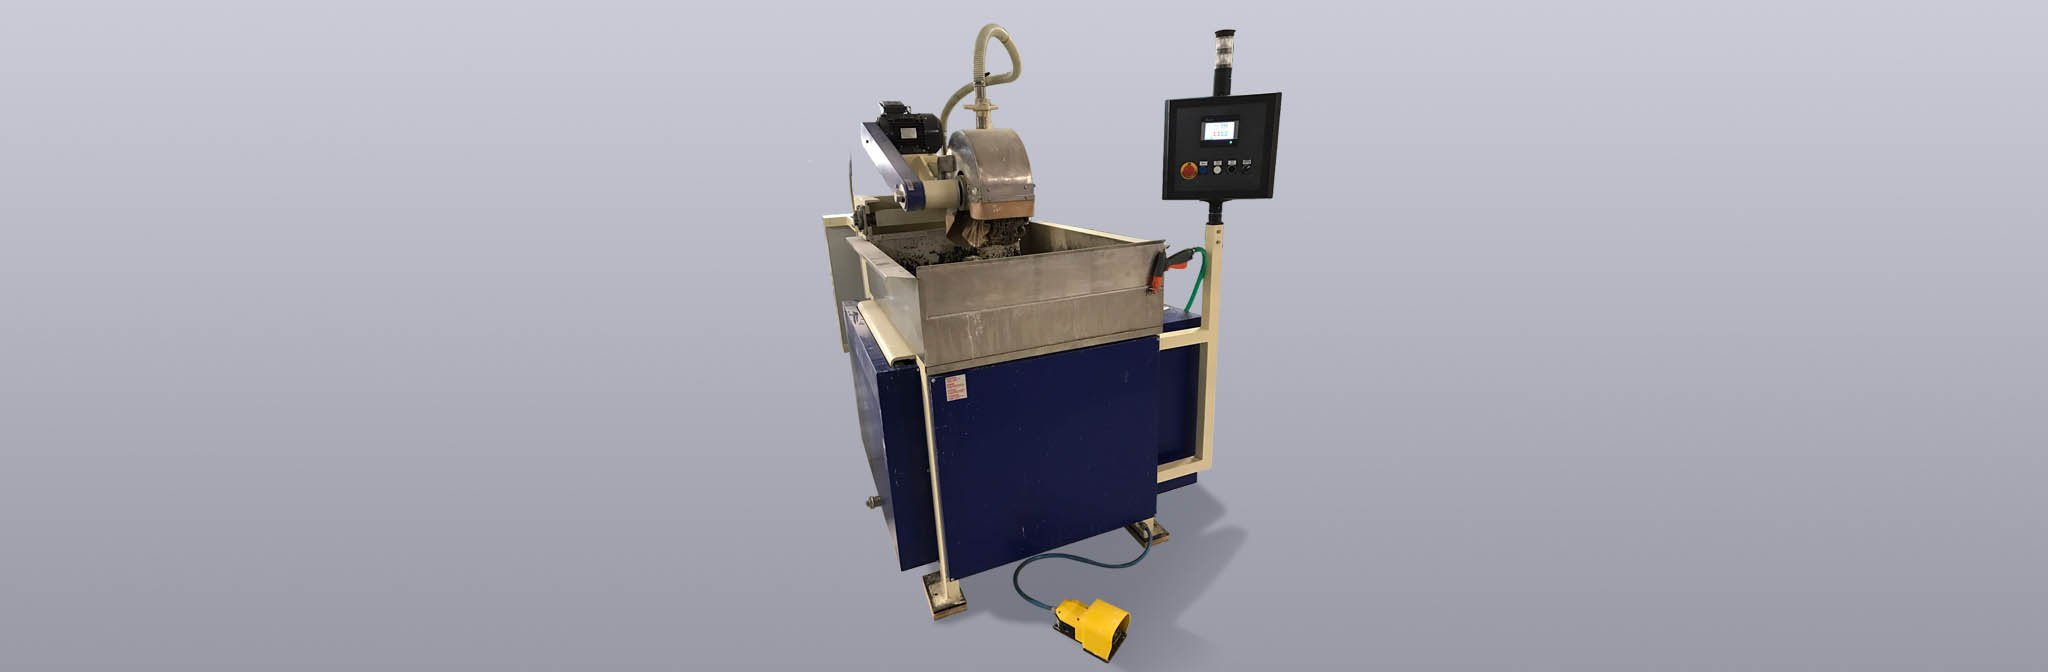 Polishing machine LX1 hollow glass